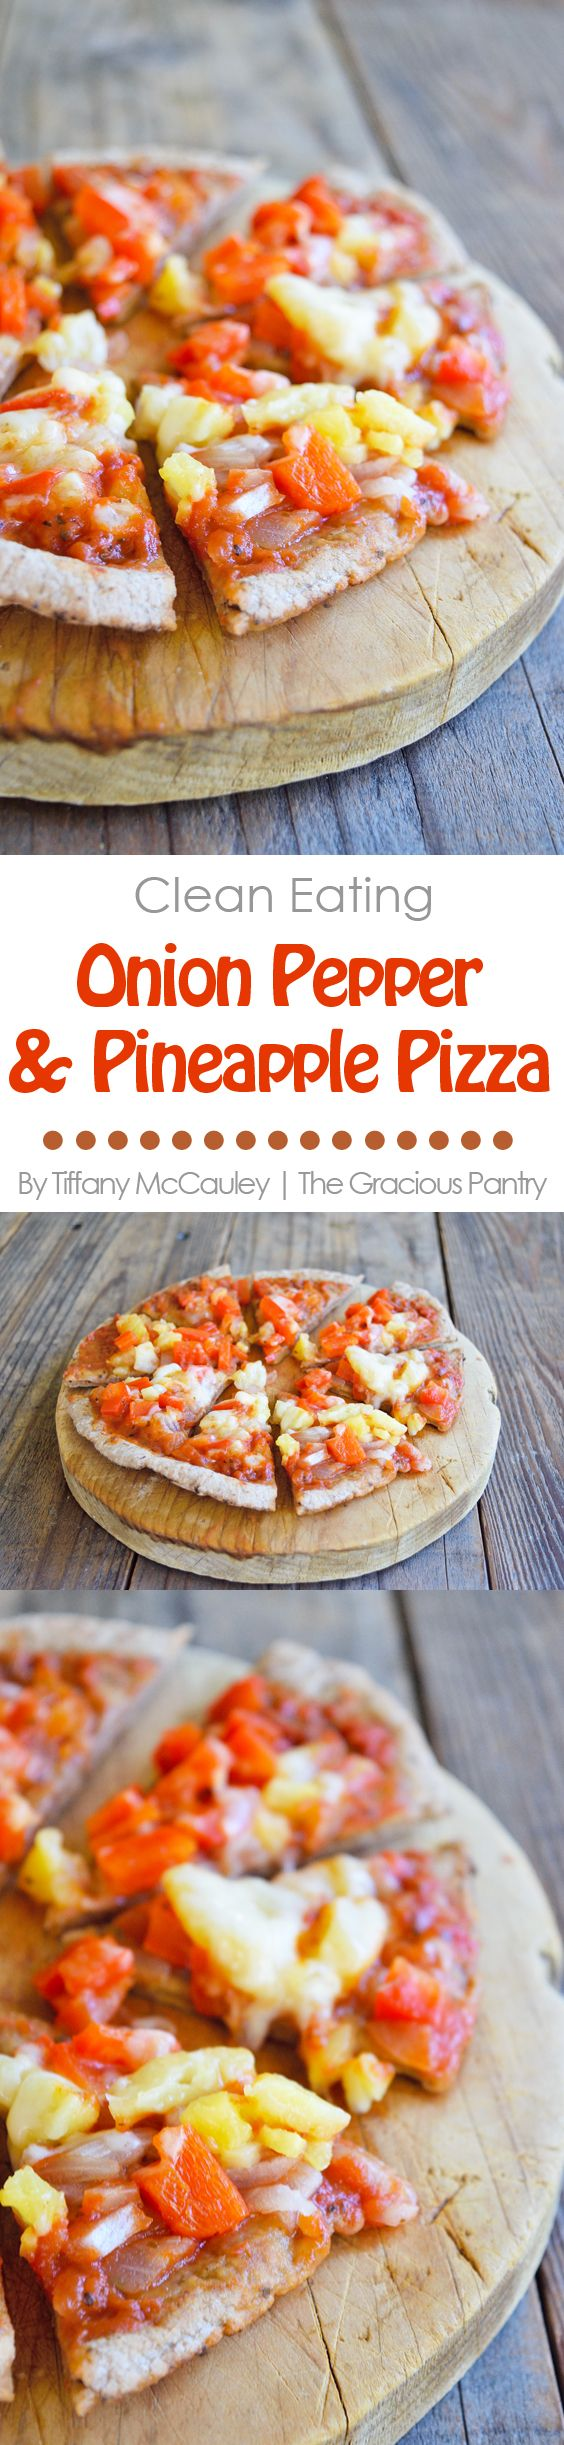 Clean Eating Onion, Pepper, and Pineapple Pizza : the gracious pantry